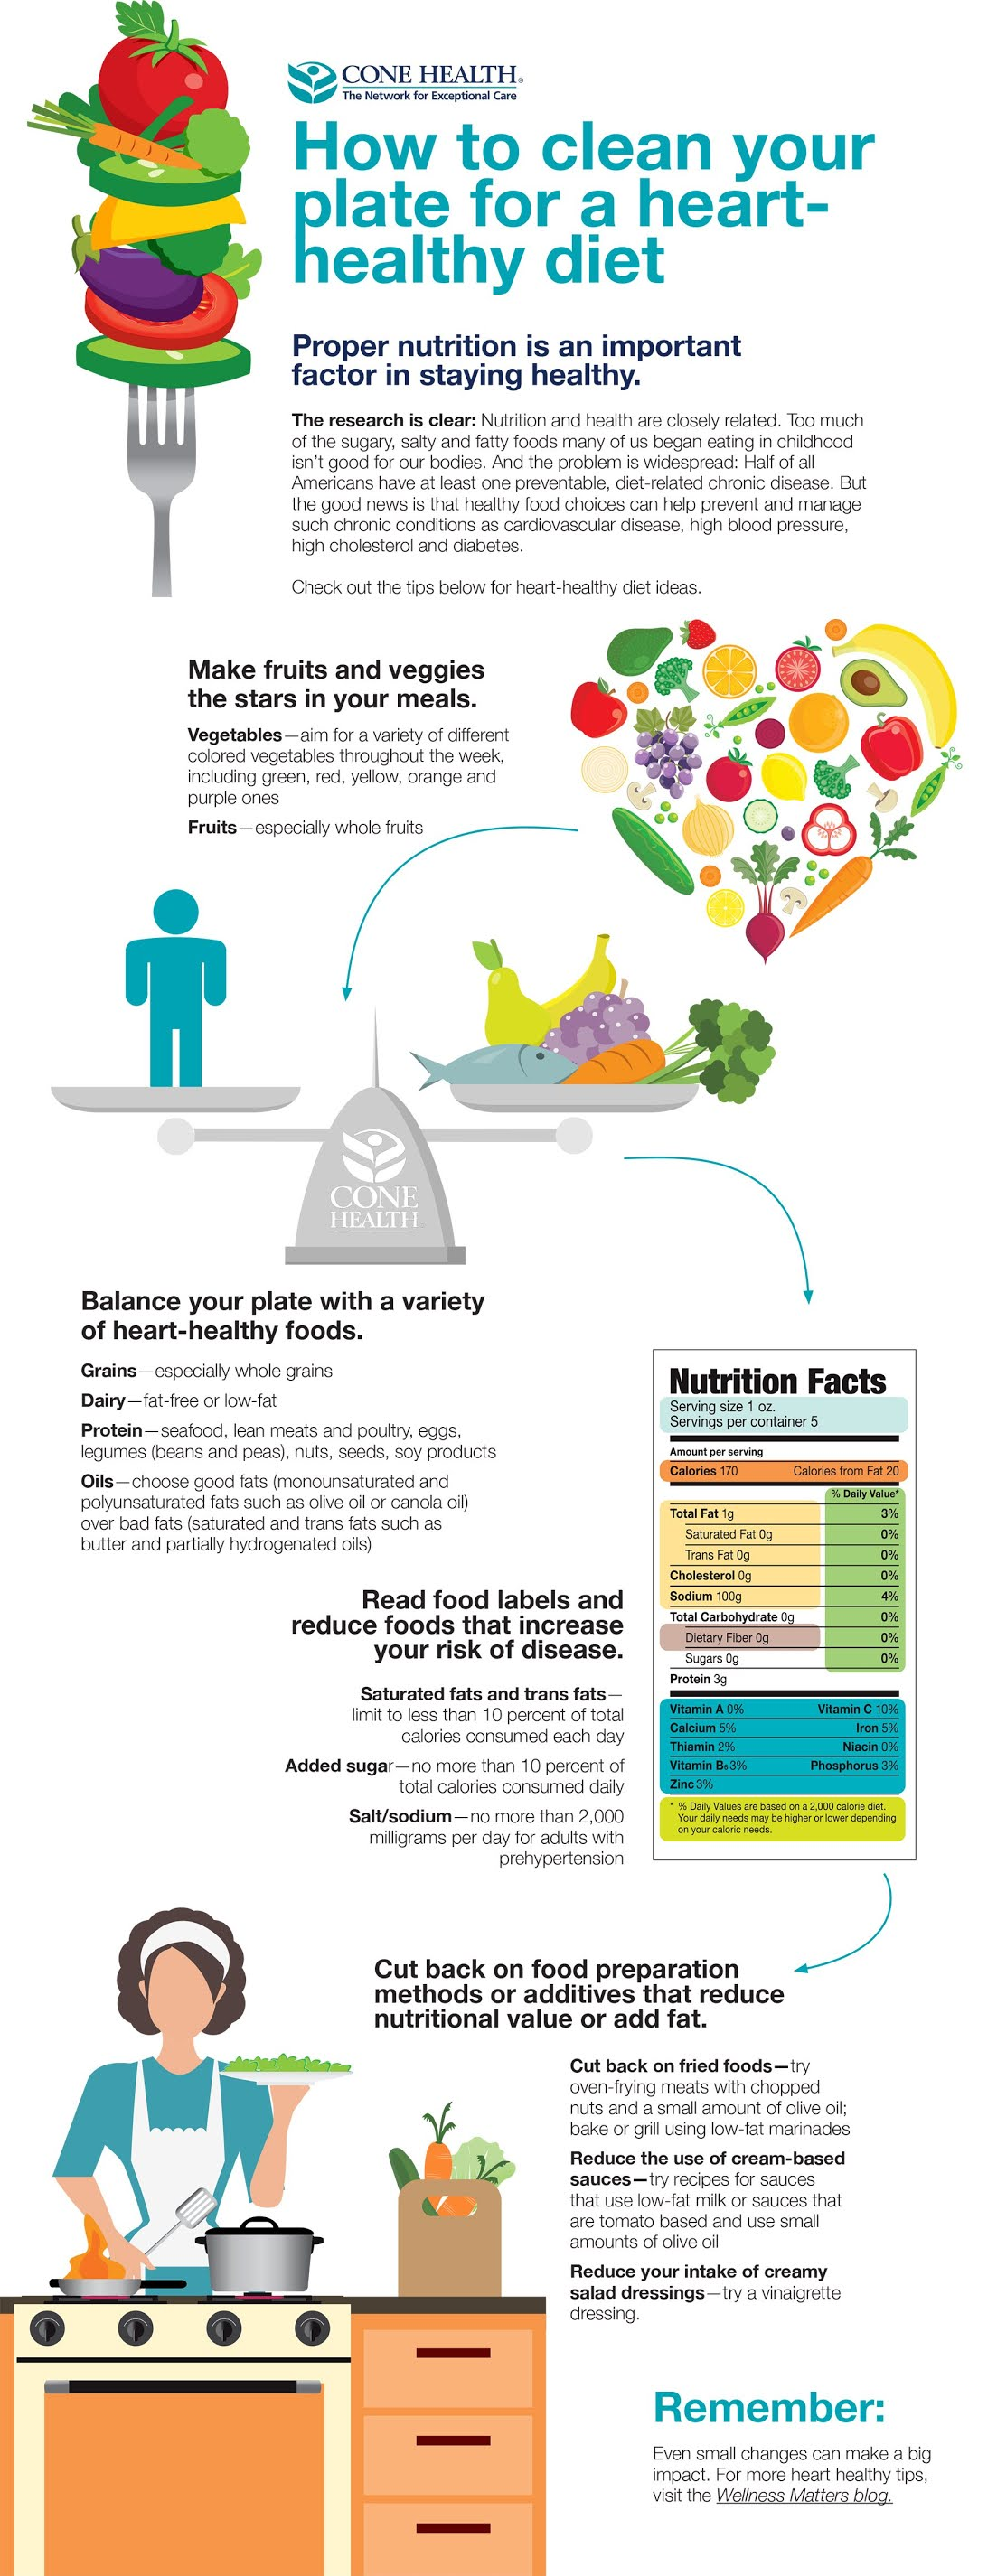 How to Clean Your Plate for a Heart-Healthy Diet #infographic